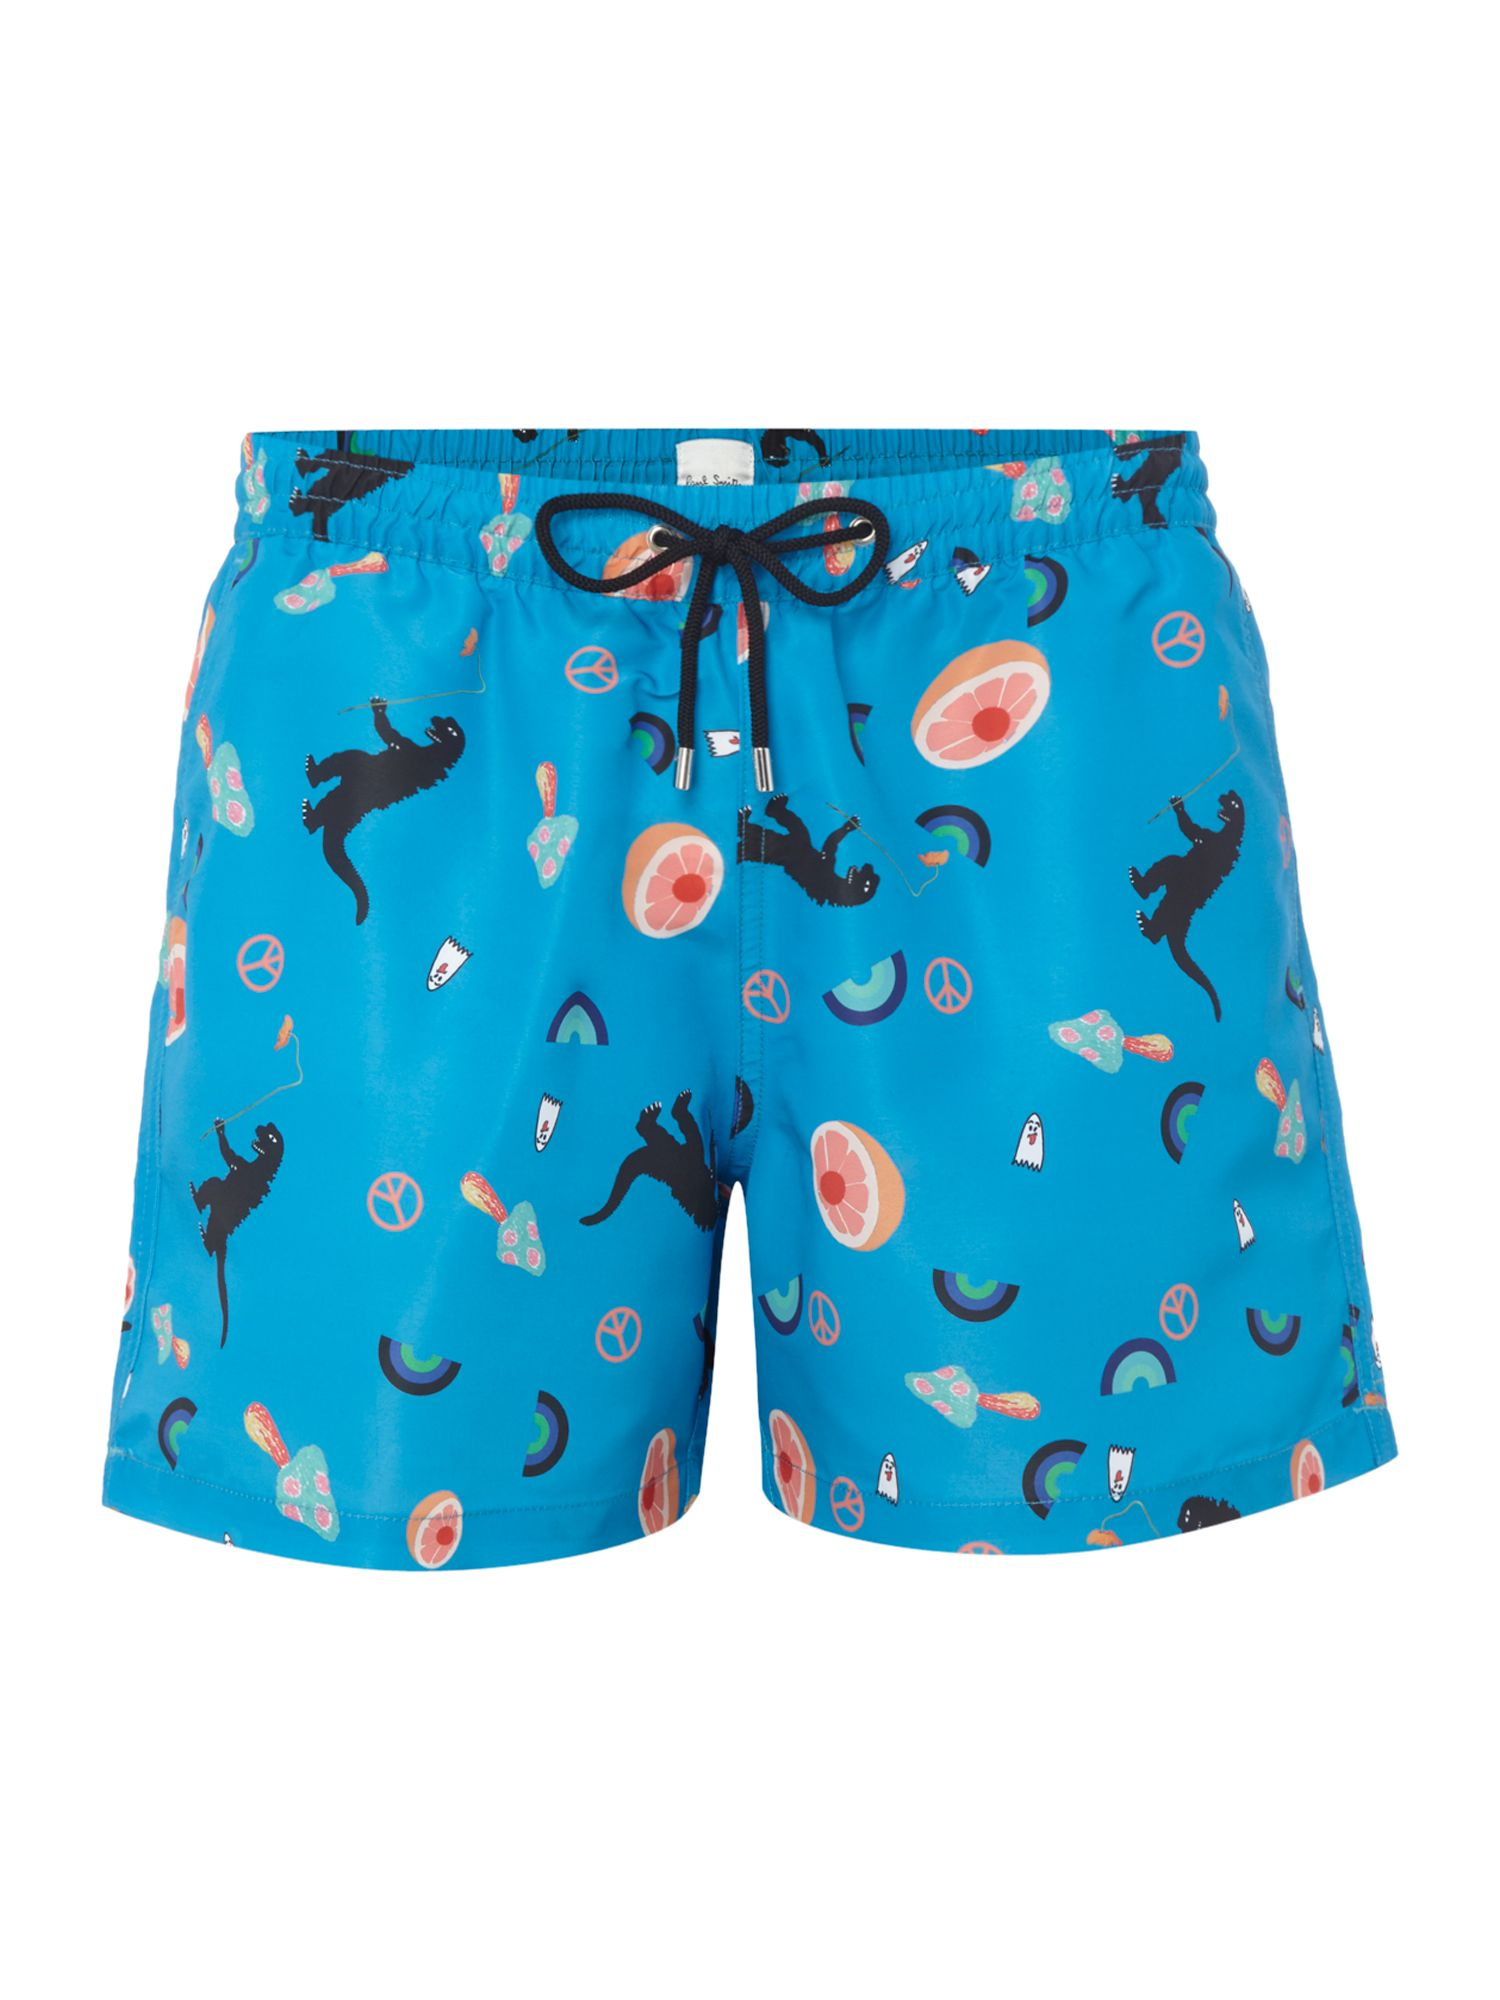 Men's Paul Smith All Over Classic Motif Swim Shorts, Blue